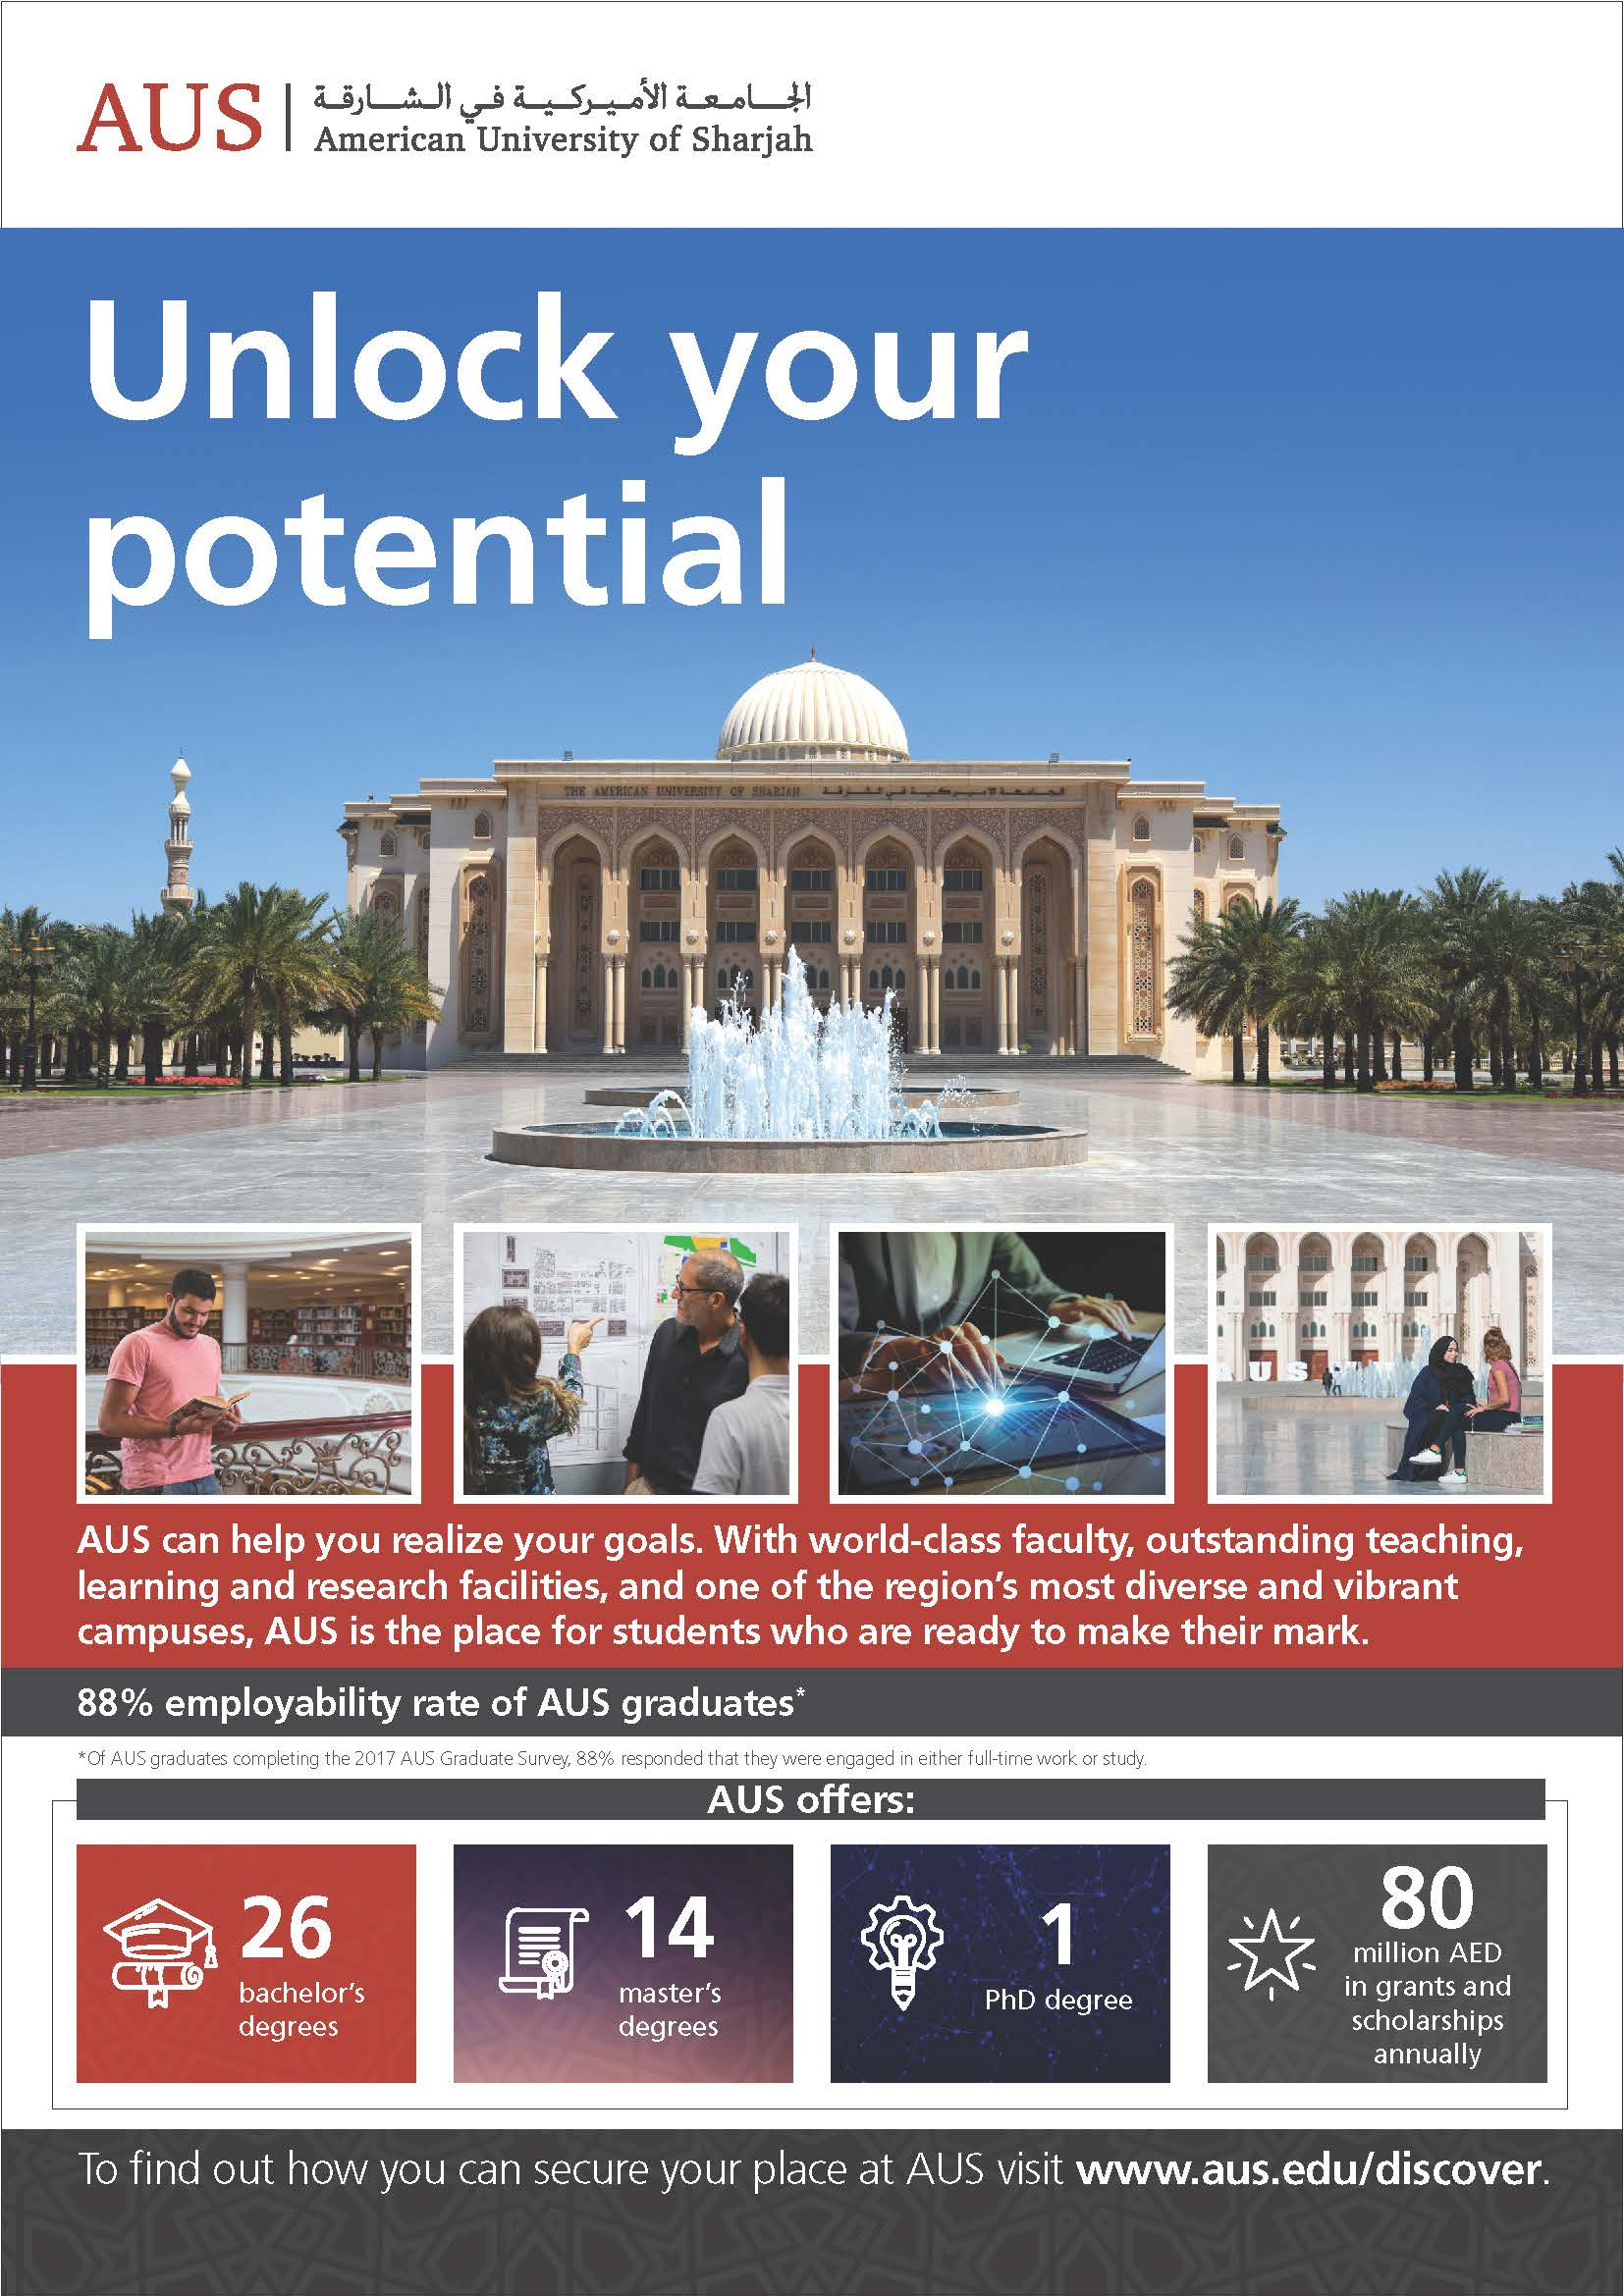 American University of Sharjah A Place for Potential-1